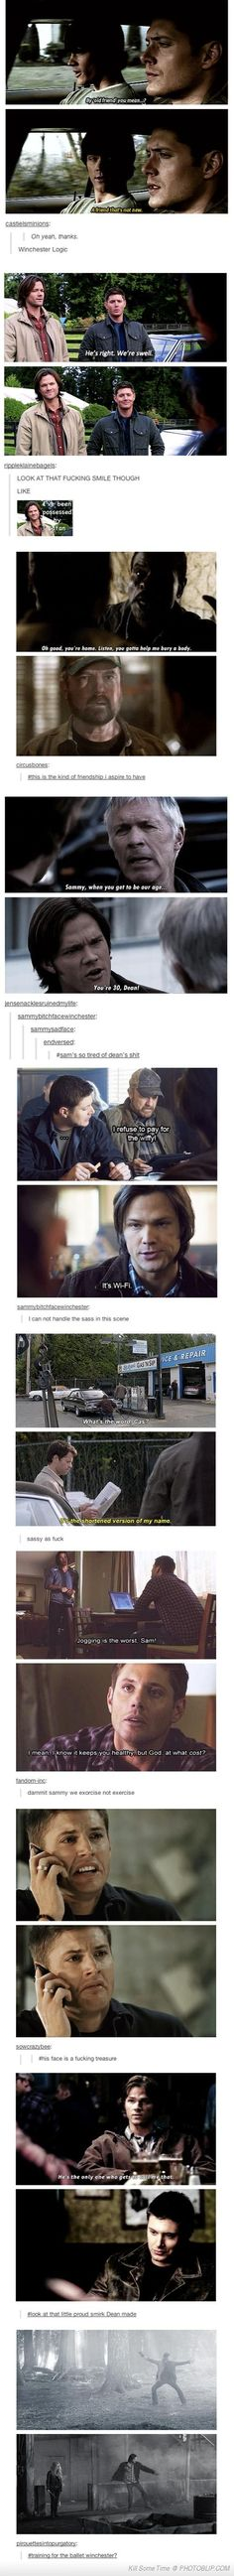 Supernatural Tumblr Posts, I think the last one has to be my favourite, I totally read it in his voice too.